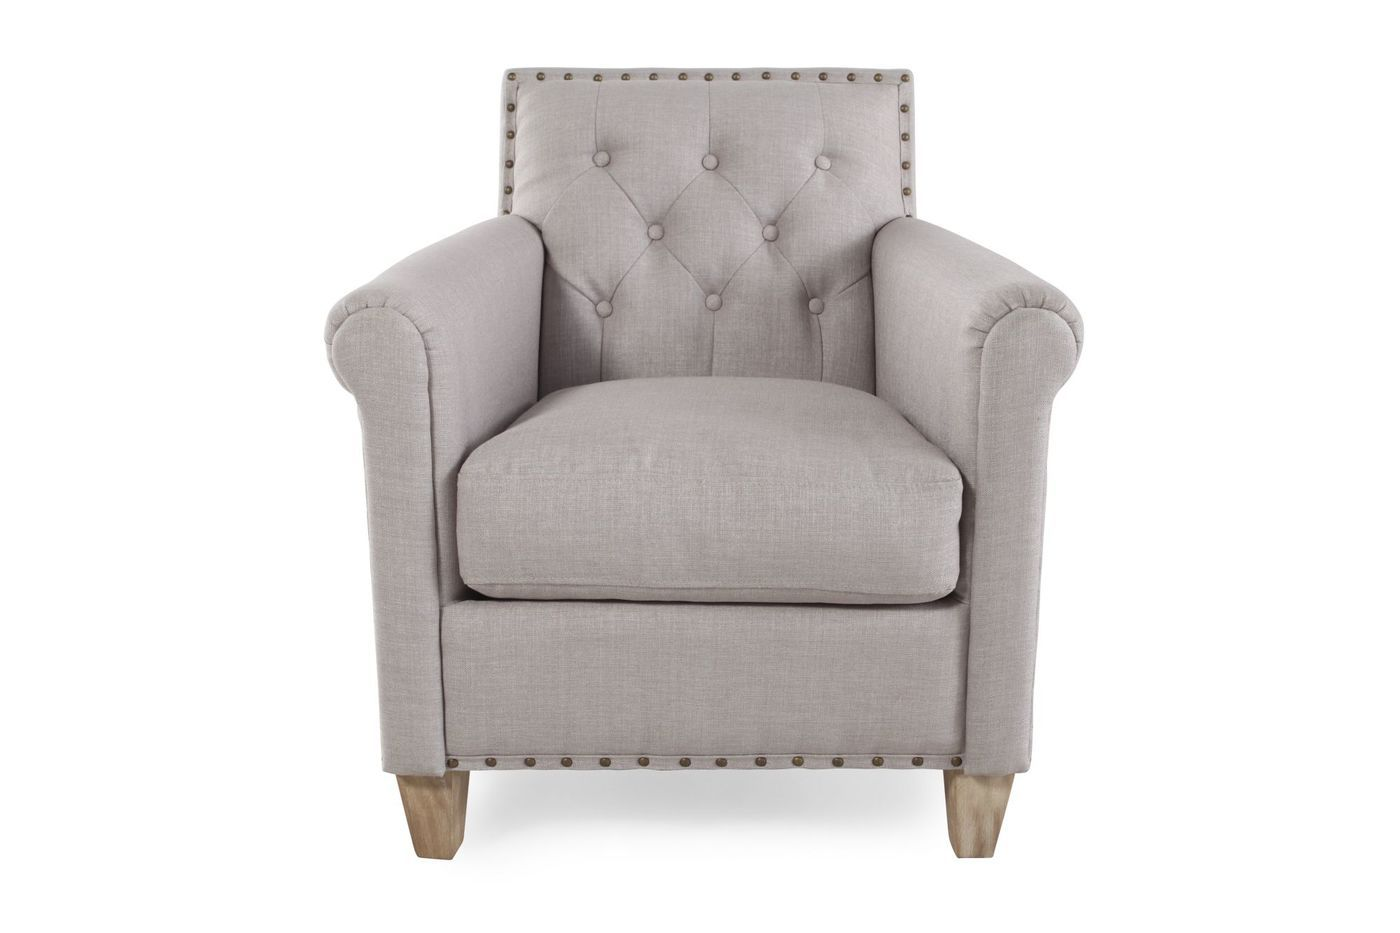 Boulevard Club Chair with Nail Heads | Mathis Brothers Furniture ...